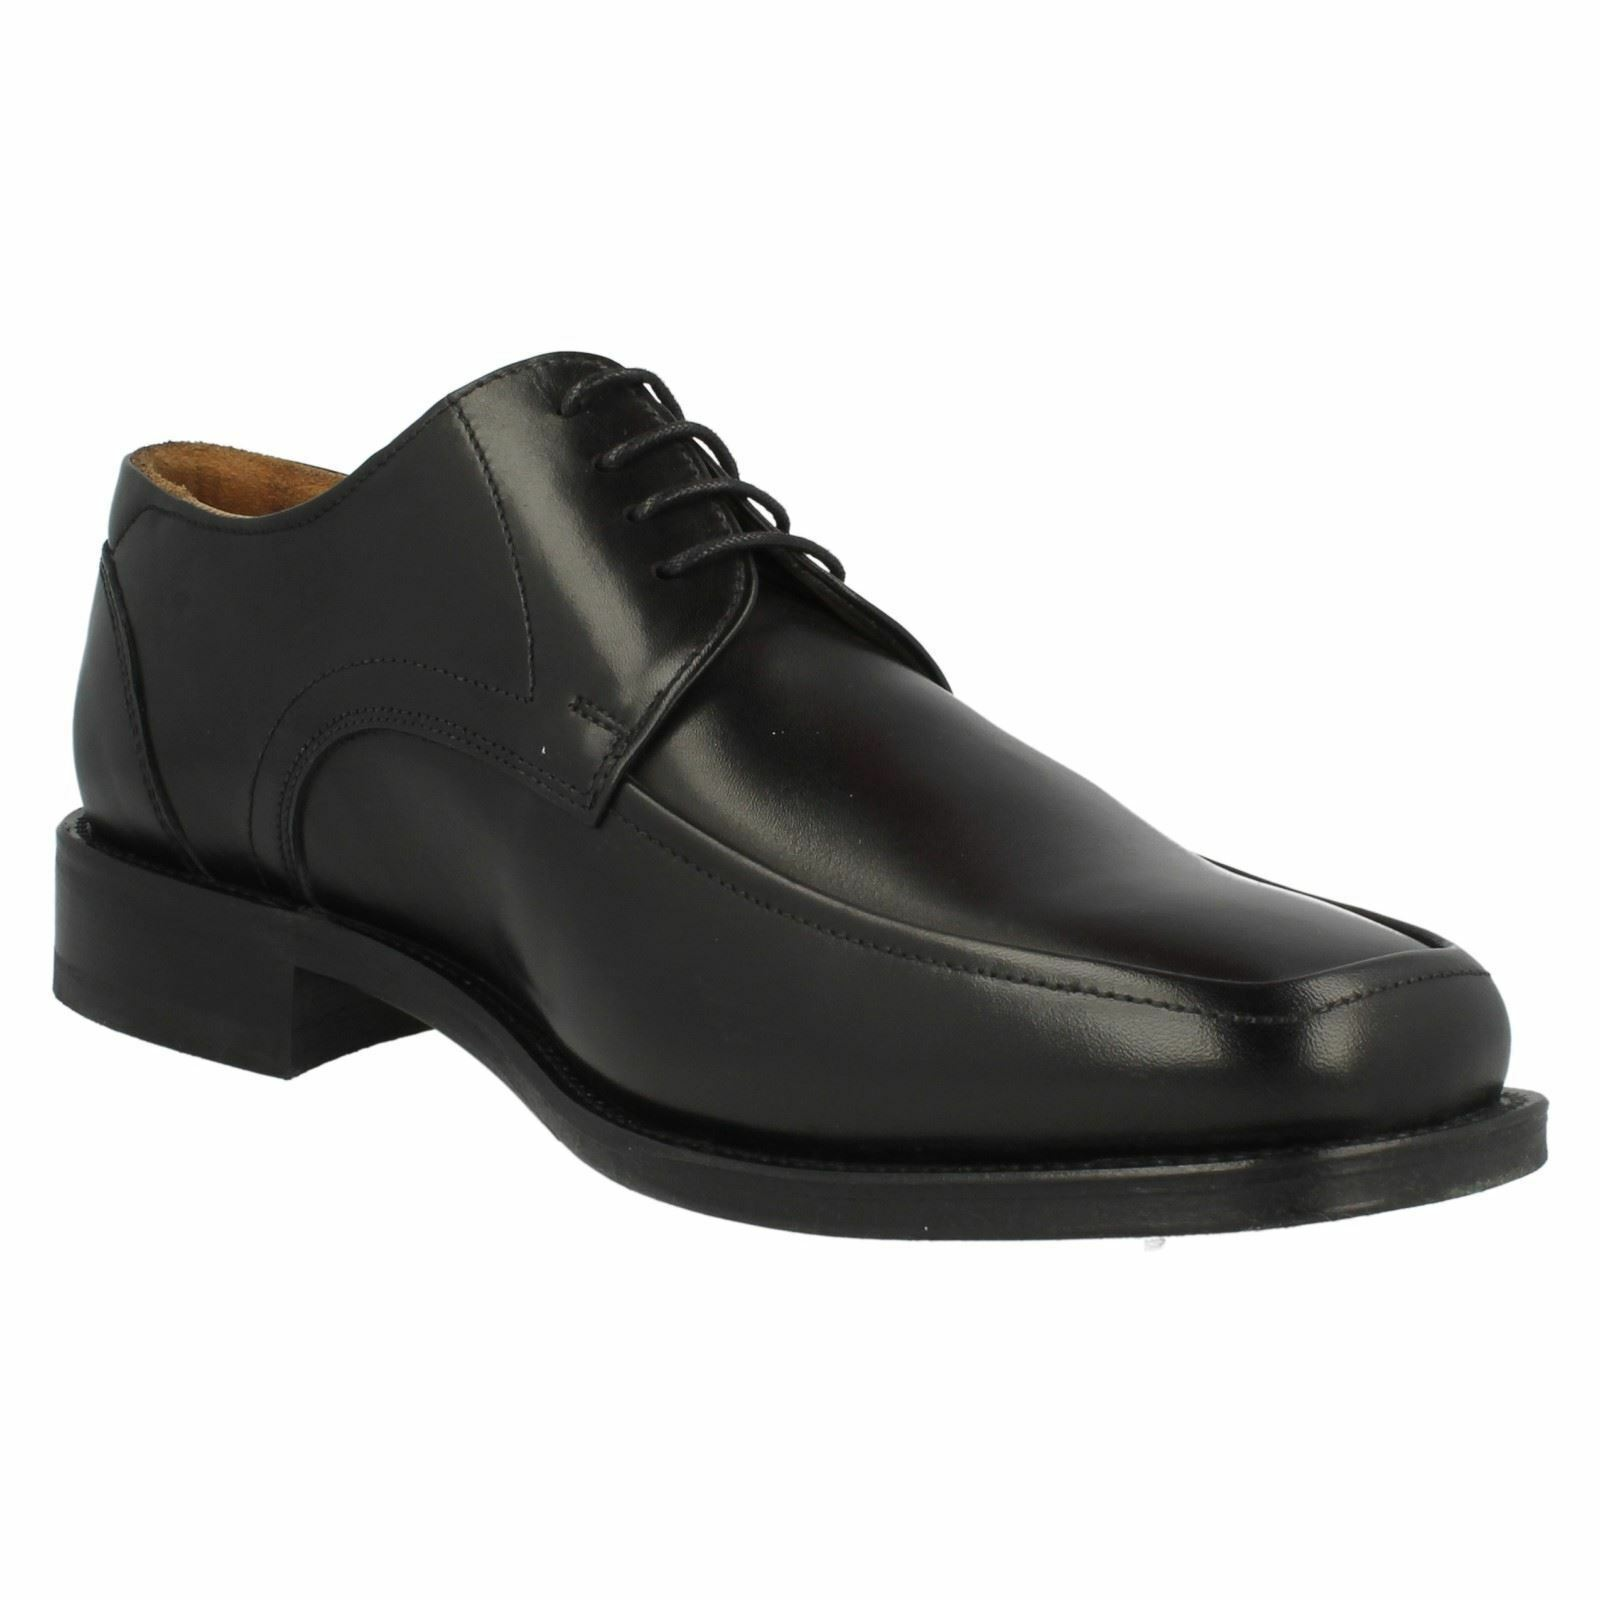 Loake Sussex Gents Leder Square Toed Smart schwarz Lace Schuhes